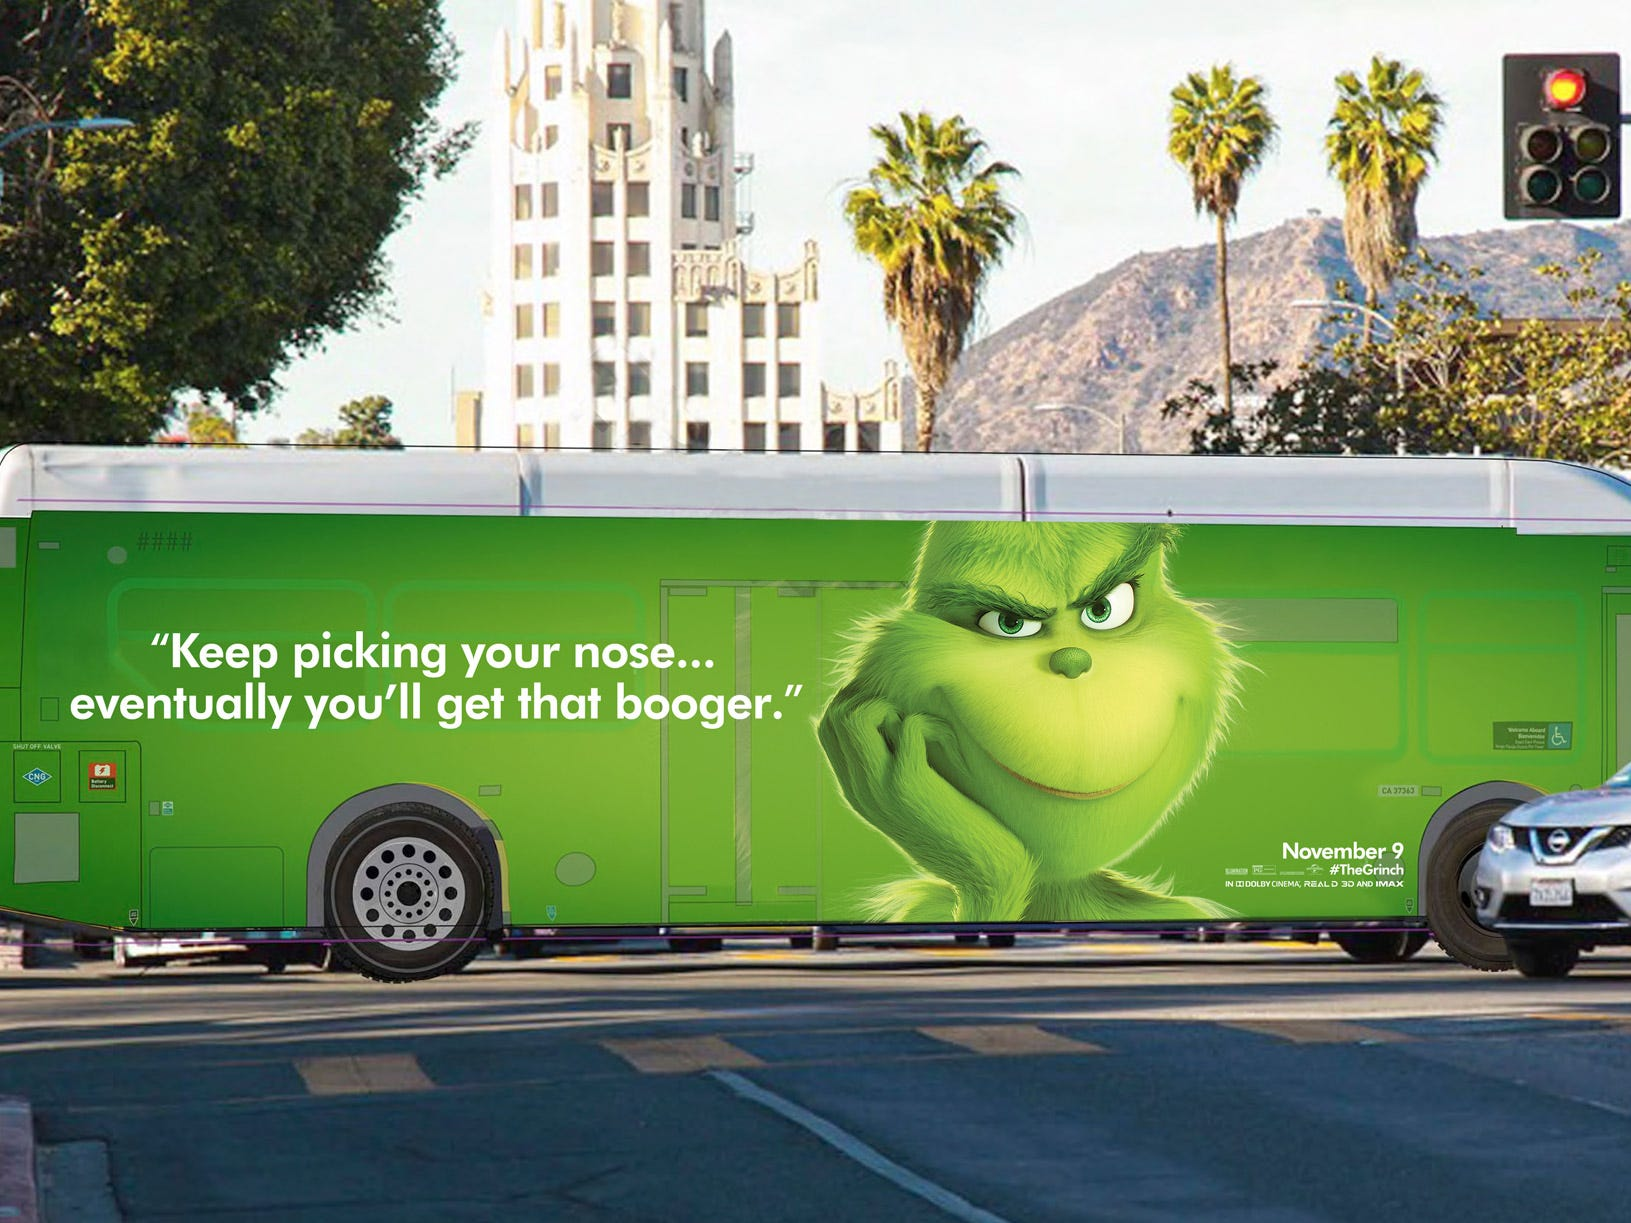 The Grinch has a message for distracted drivers in Los Angeles. Keep your hands on the wheel.